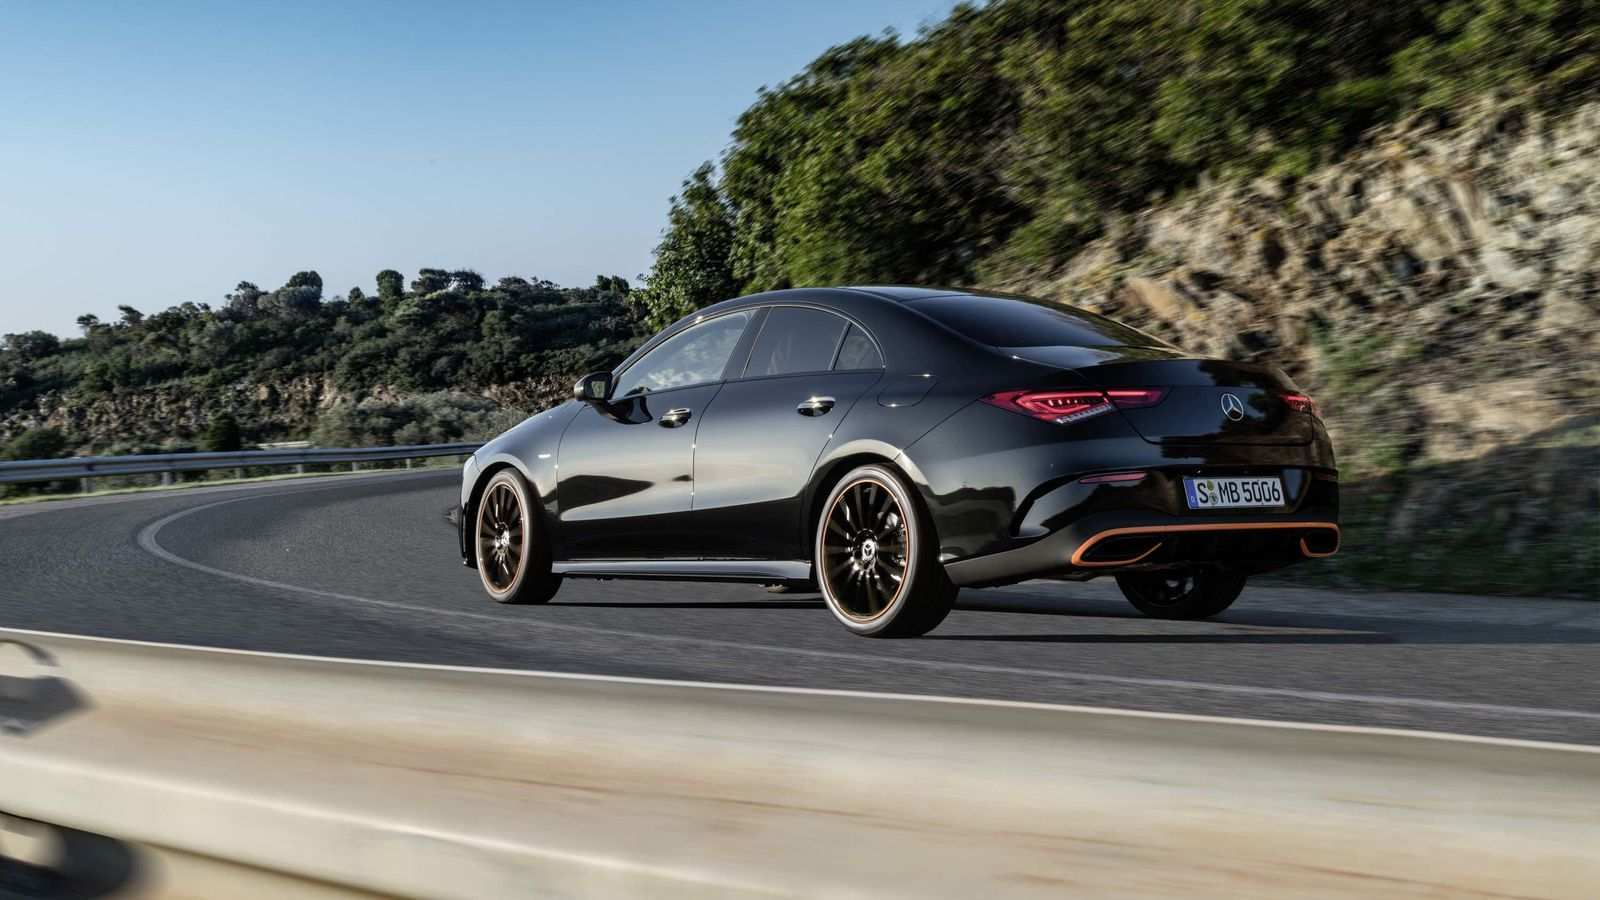 21 Gallery of Mercedes New Cla 2020 Release Date with Mercedes New Cla 2020